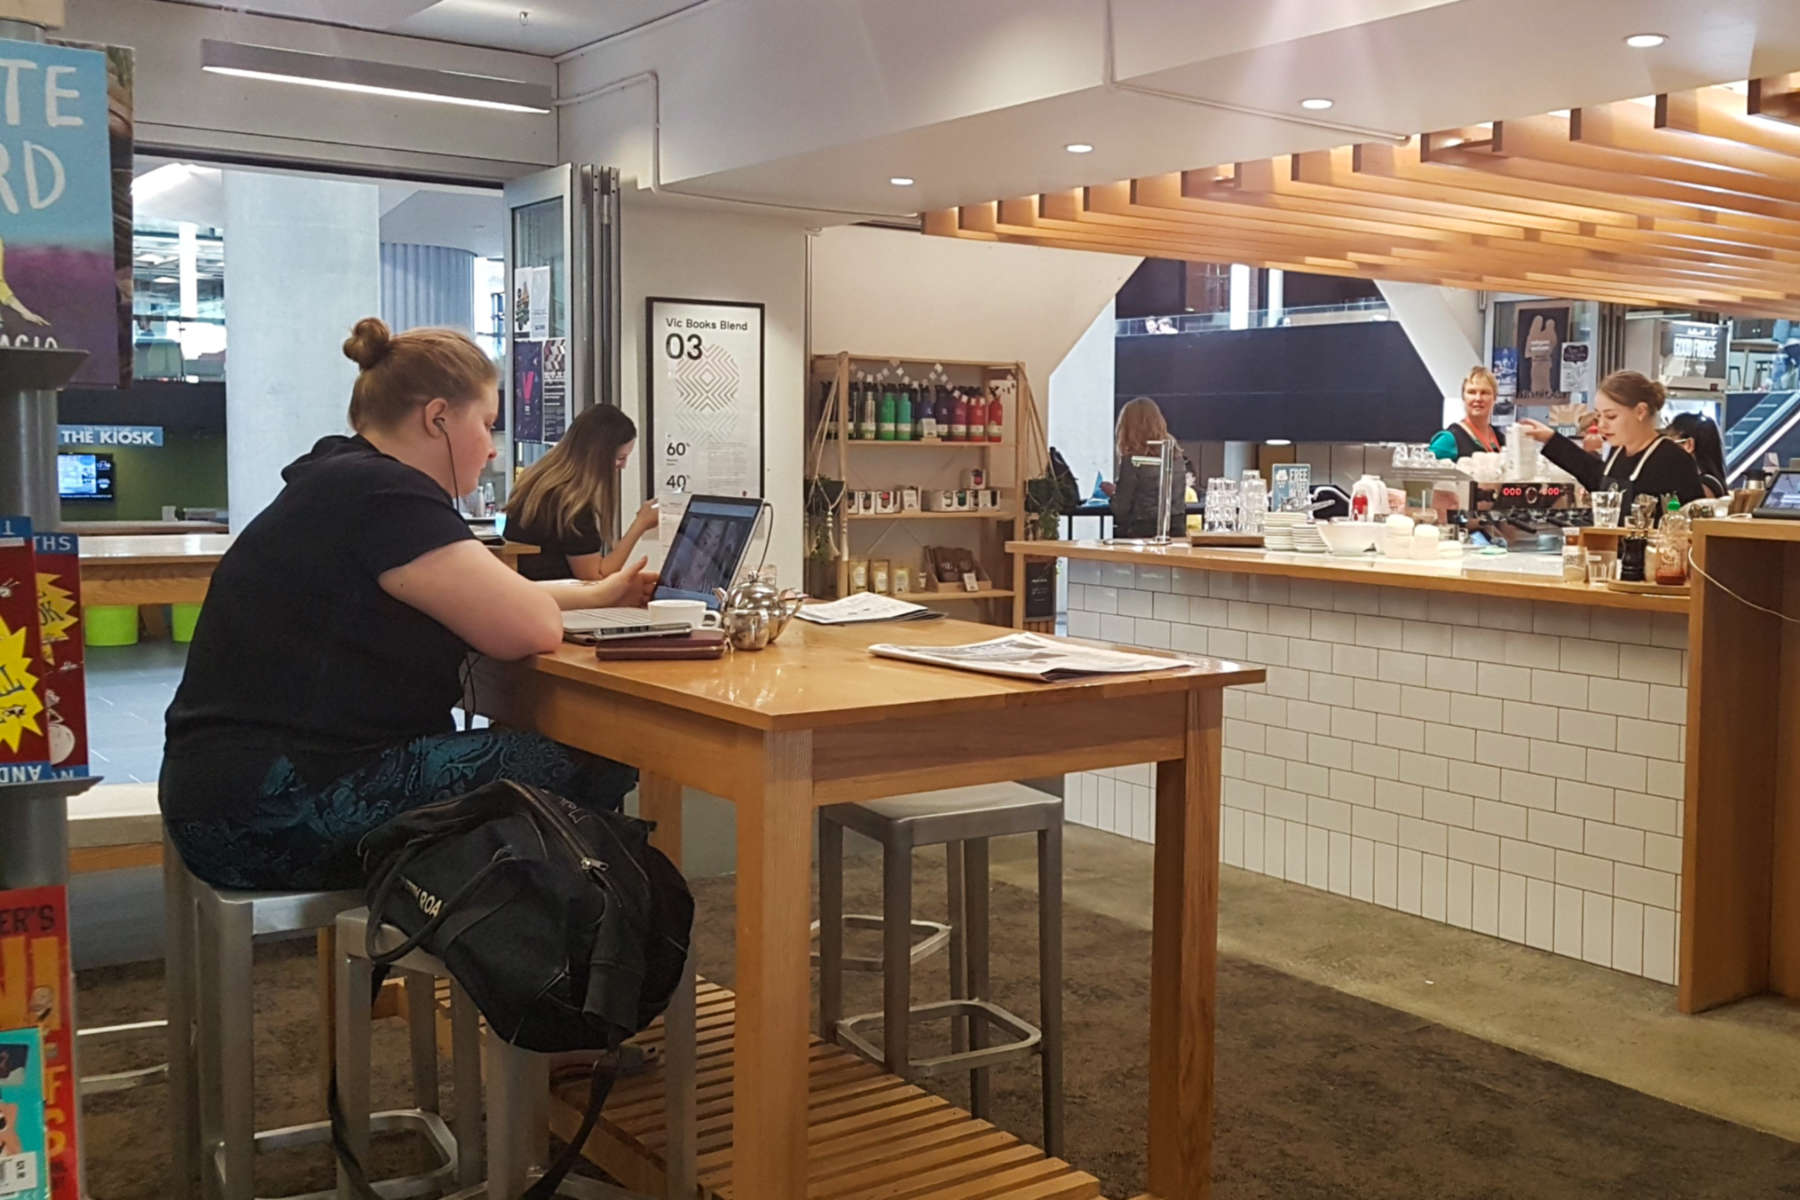 Vic Books - seating interior space